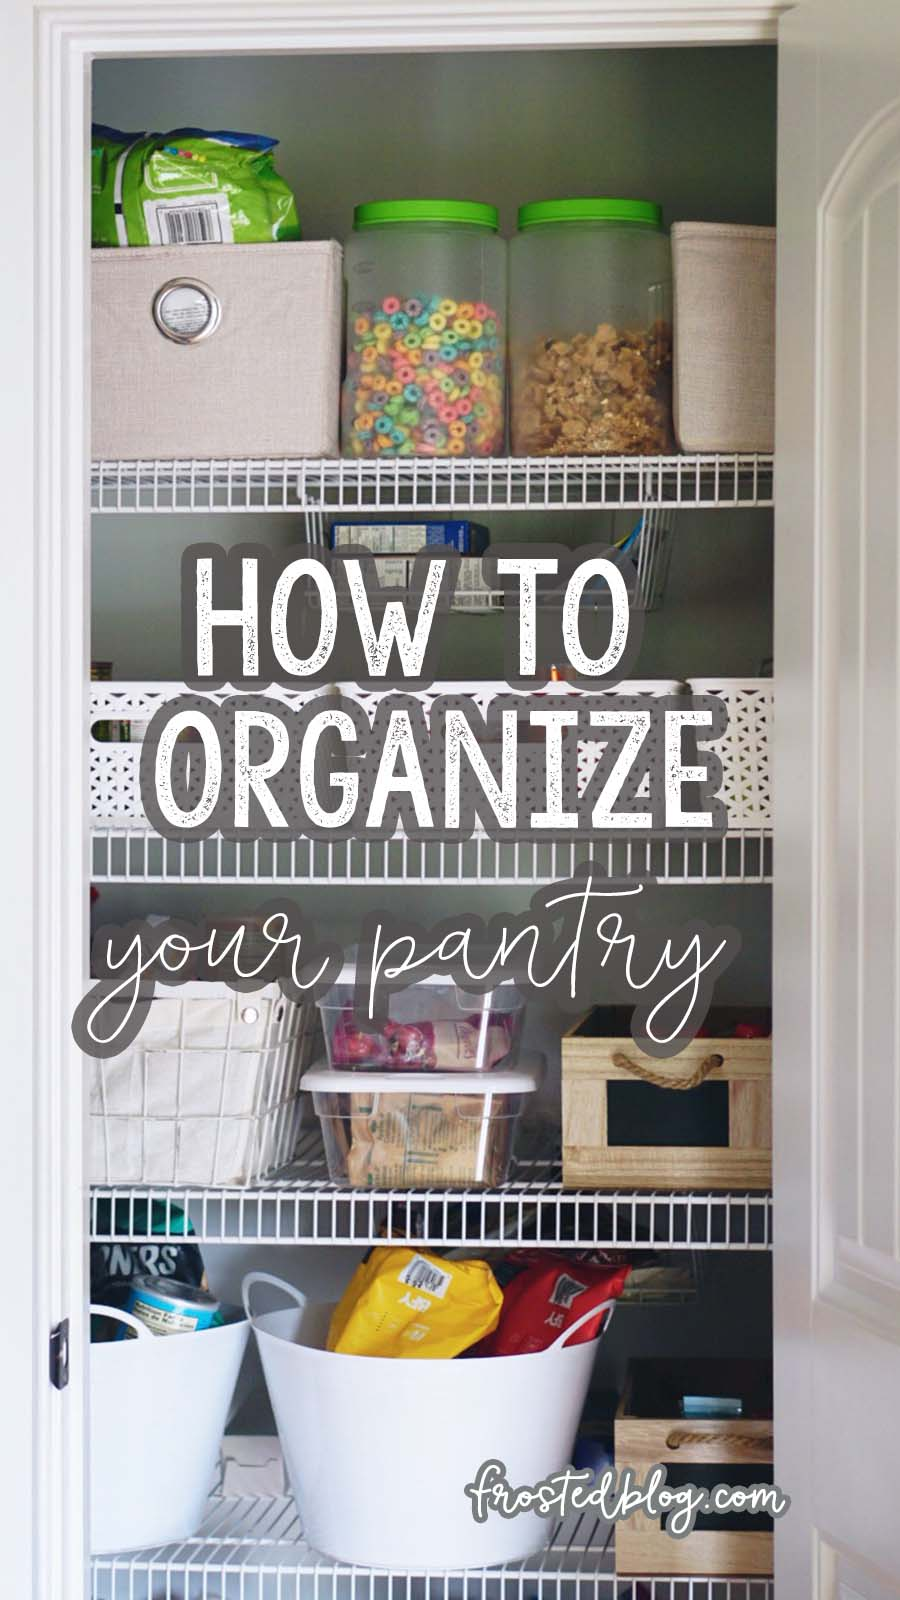 Pantry Organization ideas and Food Storage Tips- Protecting Your Home from Pests with Misty Nelson, frostedblog and Orkin